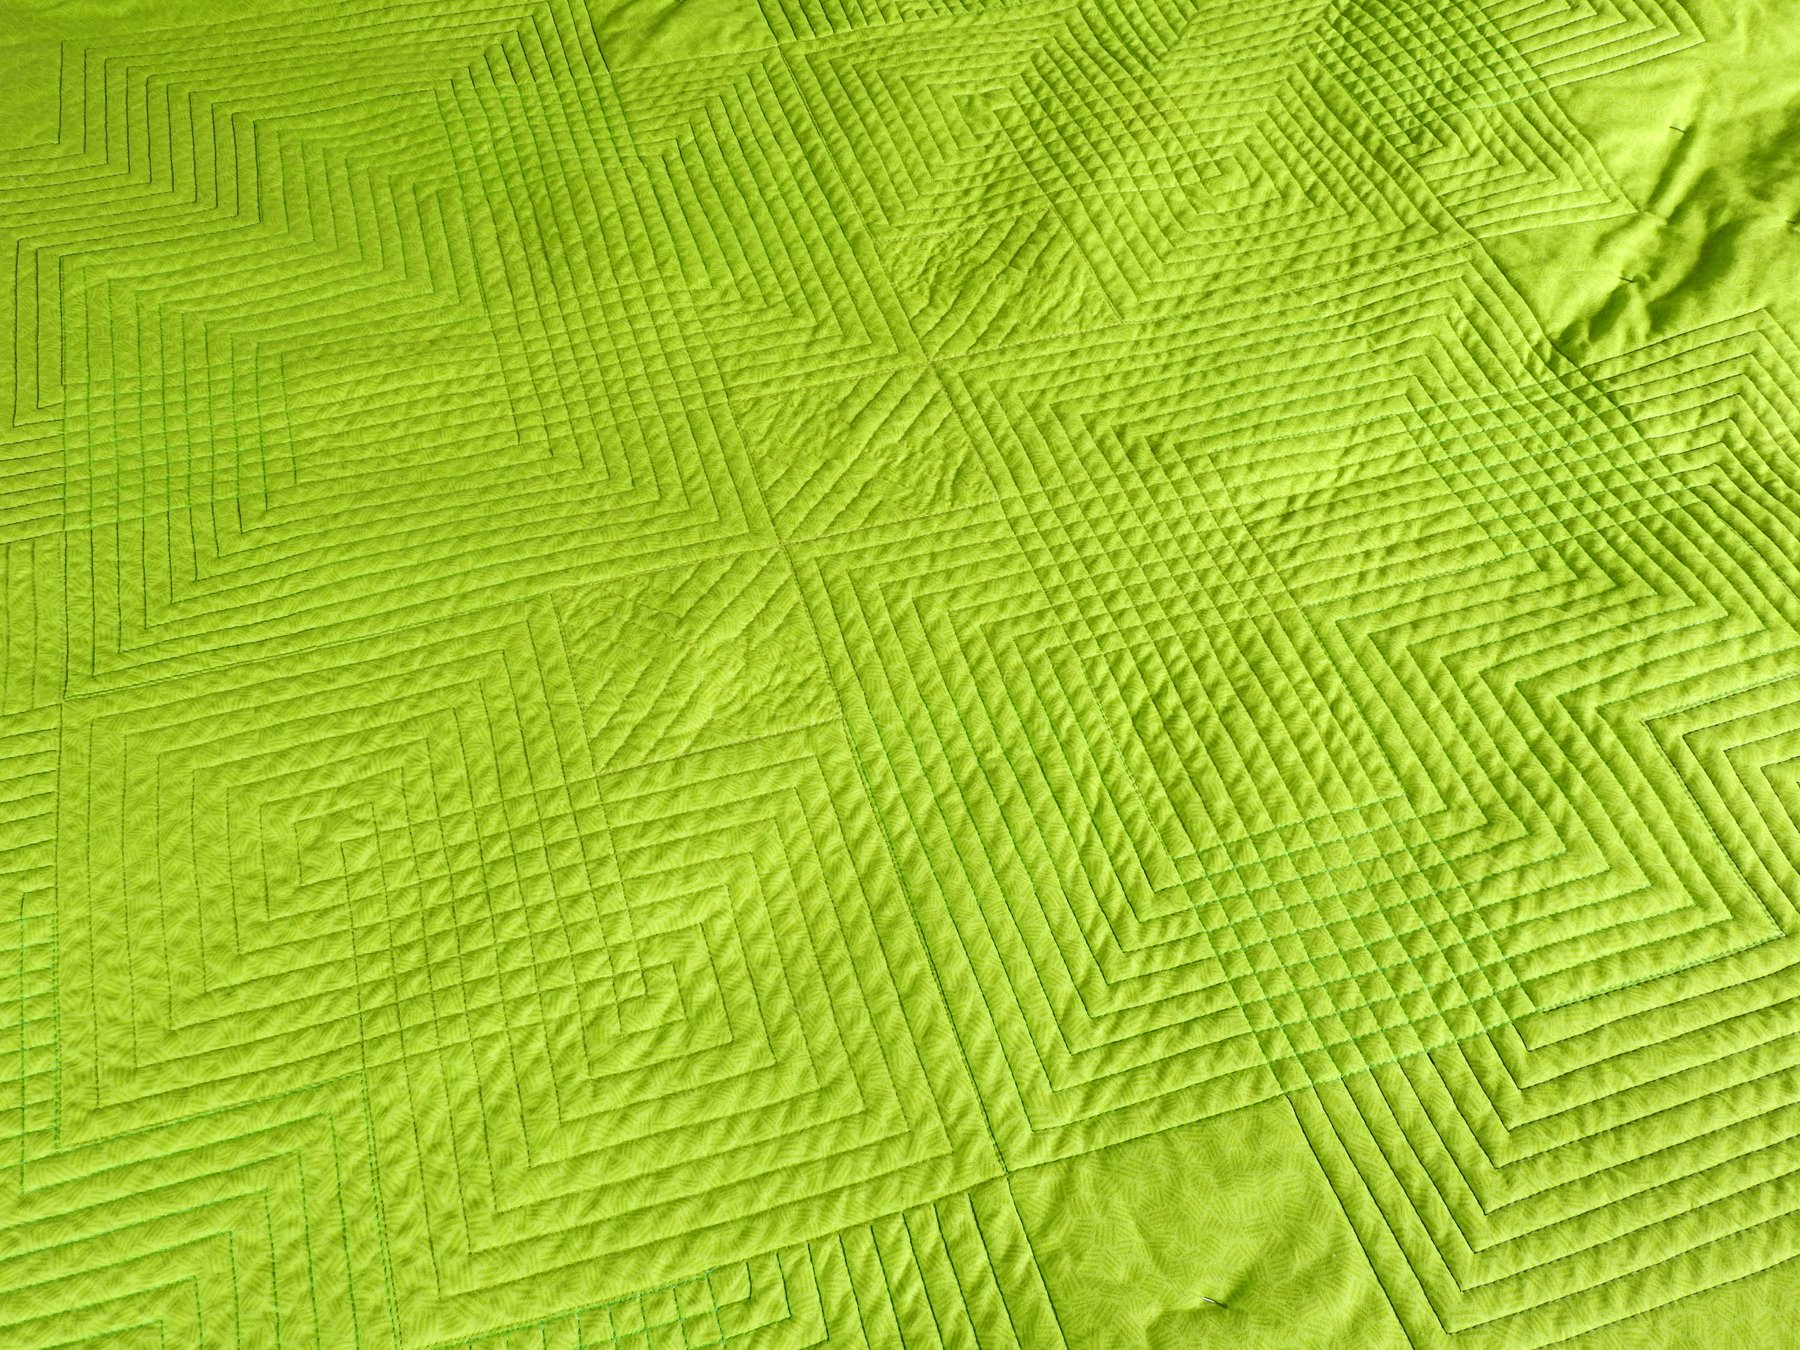 Planview Quilting Progress - Quilt Backing